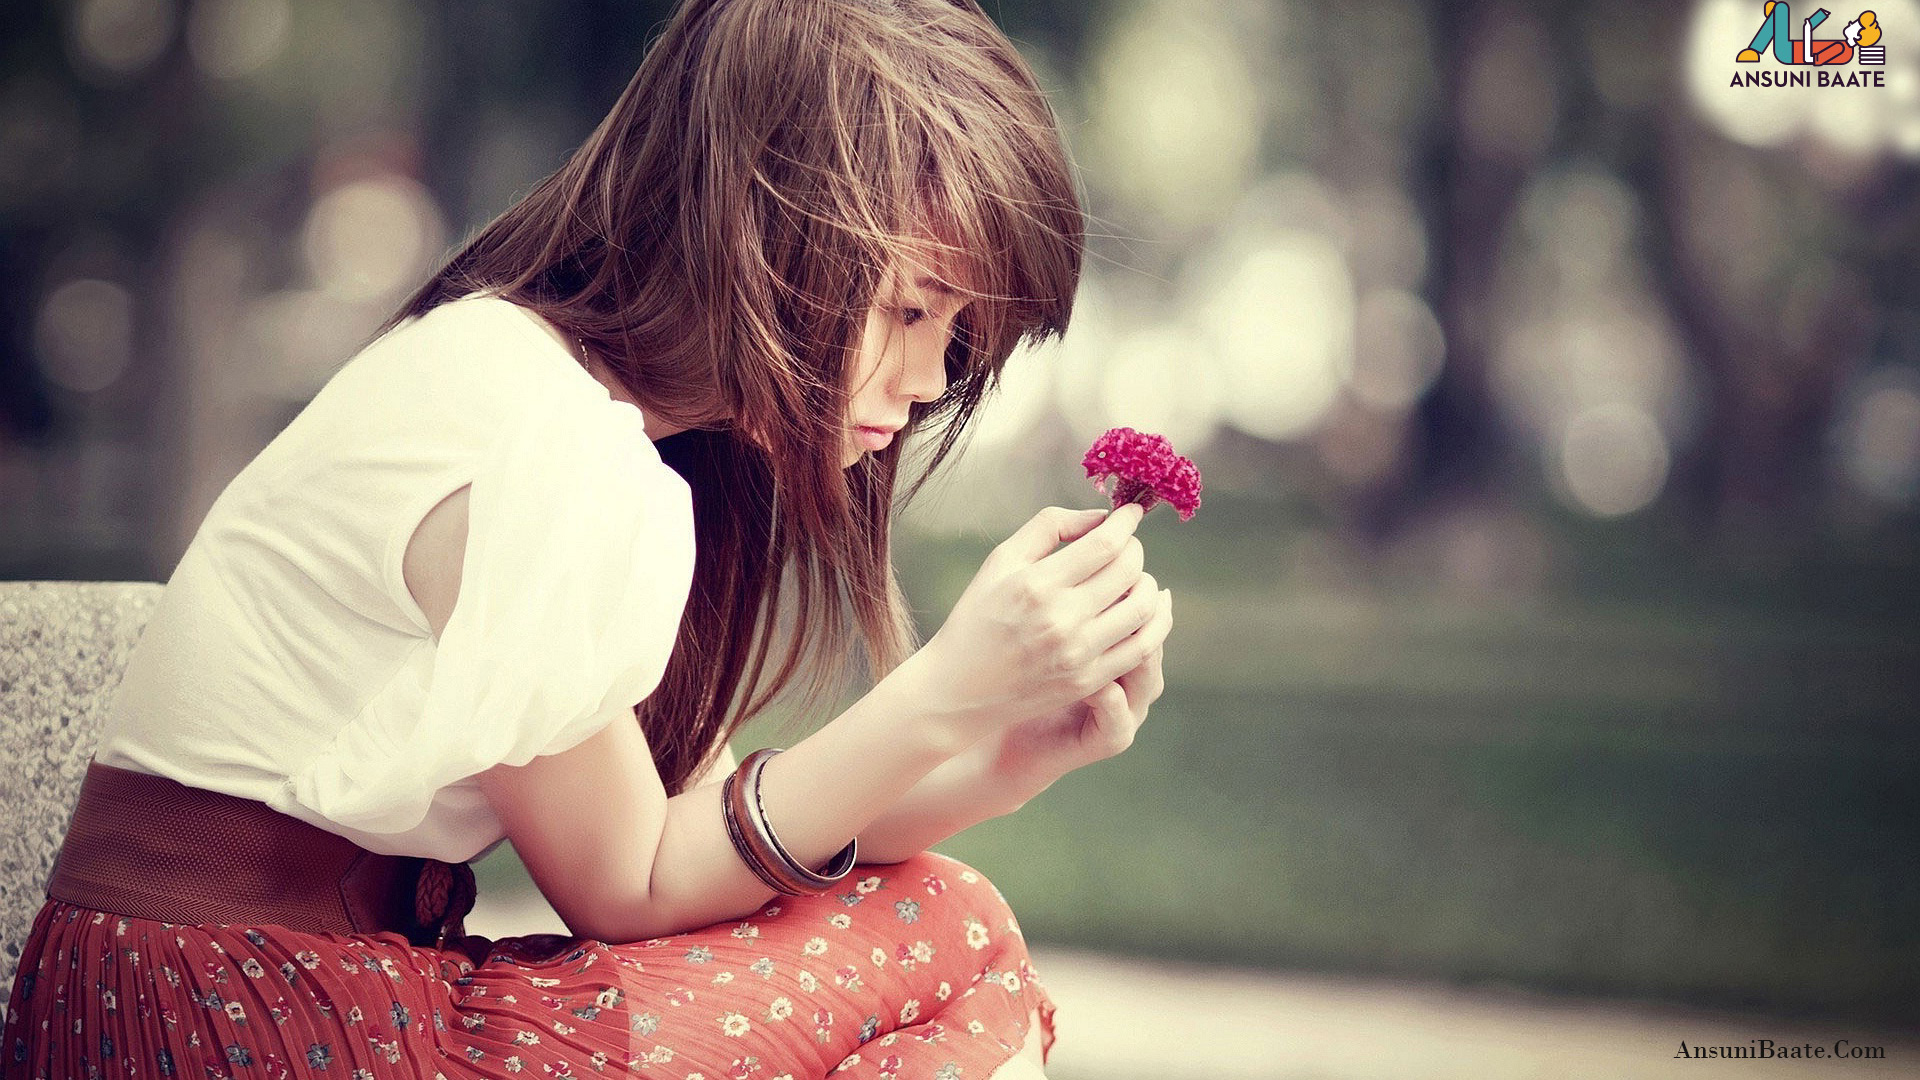 Sad Images Full Hd Gallery Wallpapers Sad Photos Pics Picture